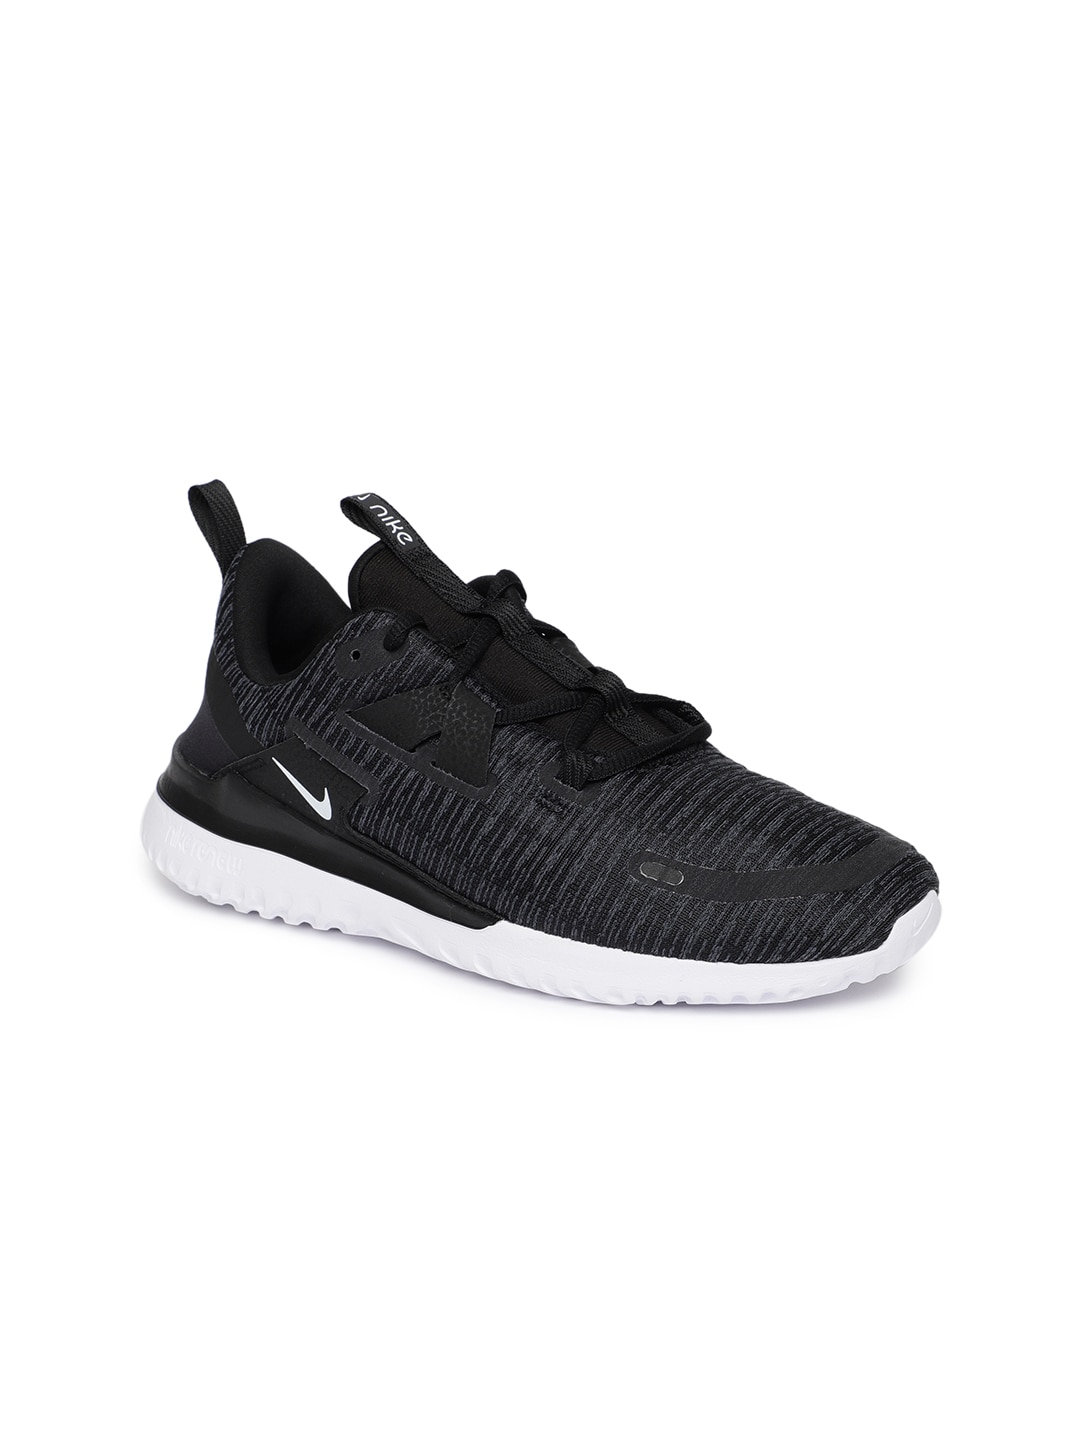 f45ffdcb3b9 Nike Black Shoes - Buy Nike Black Shoes Online in India